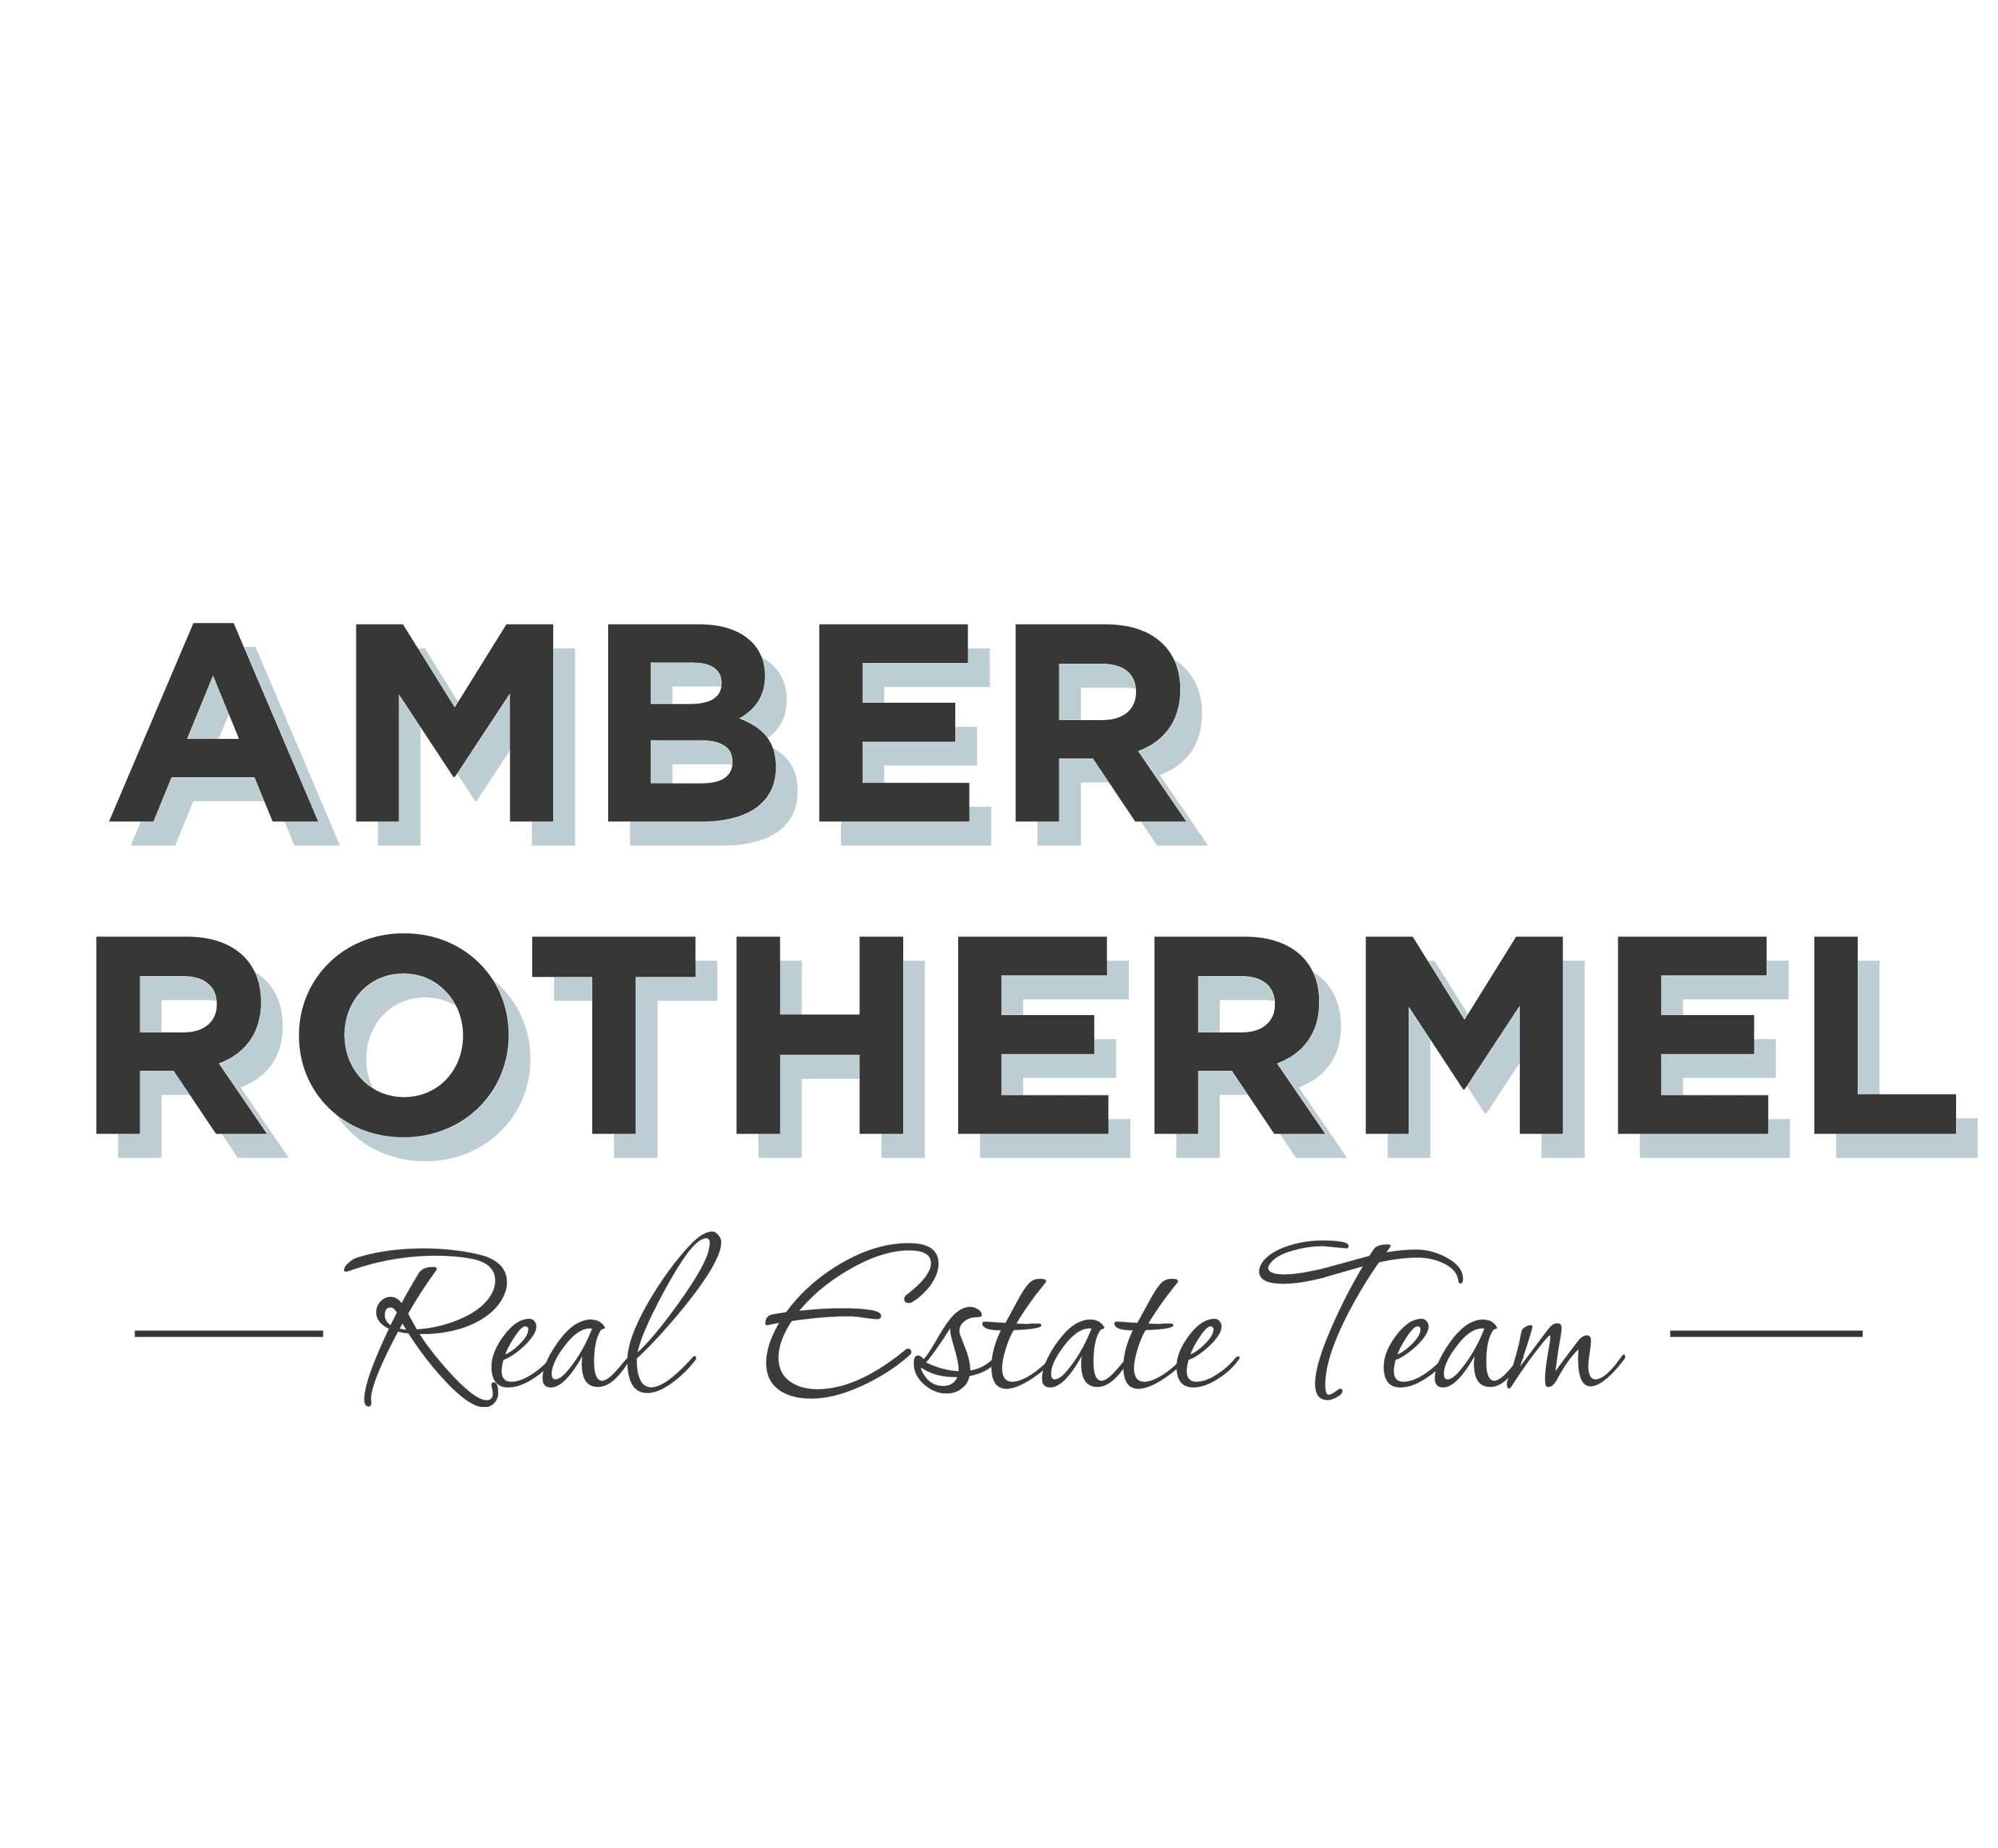 Amber Rothermel Real Estate Team